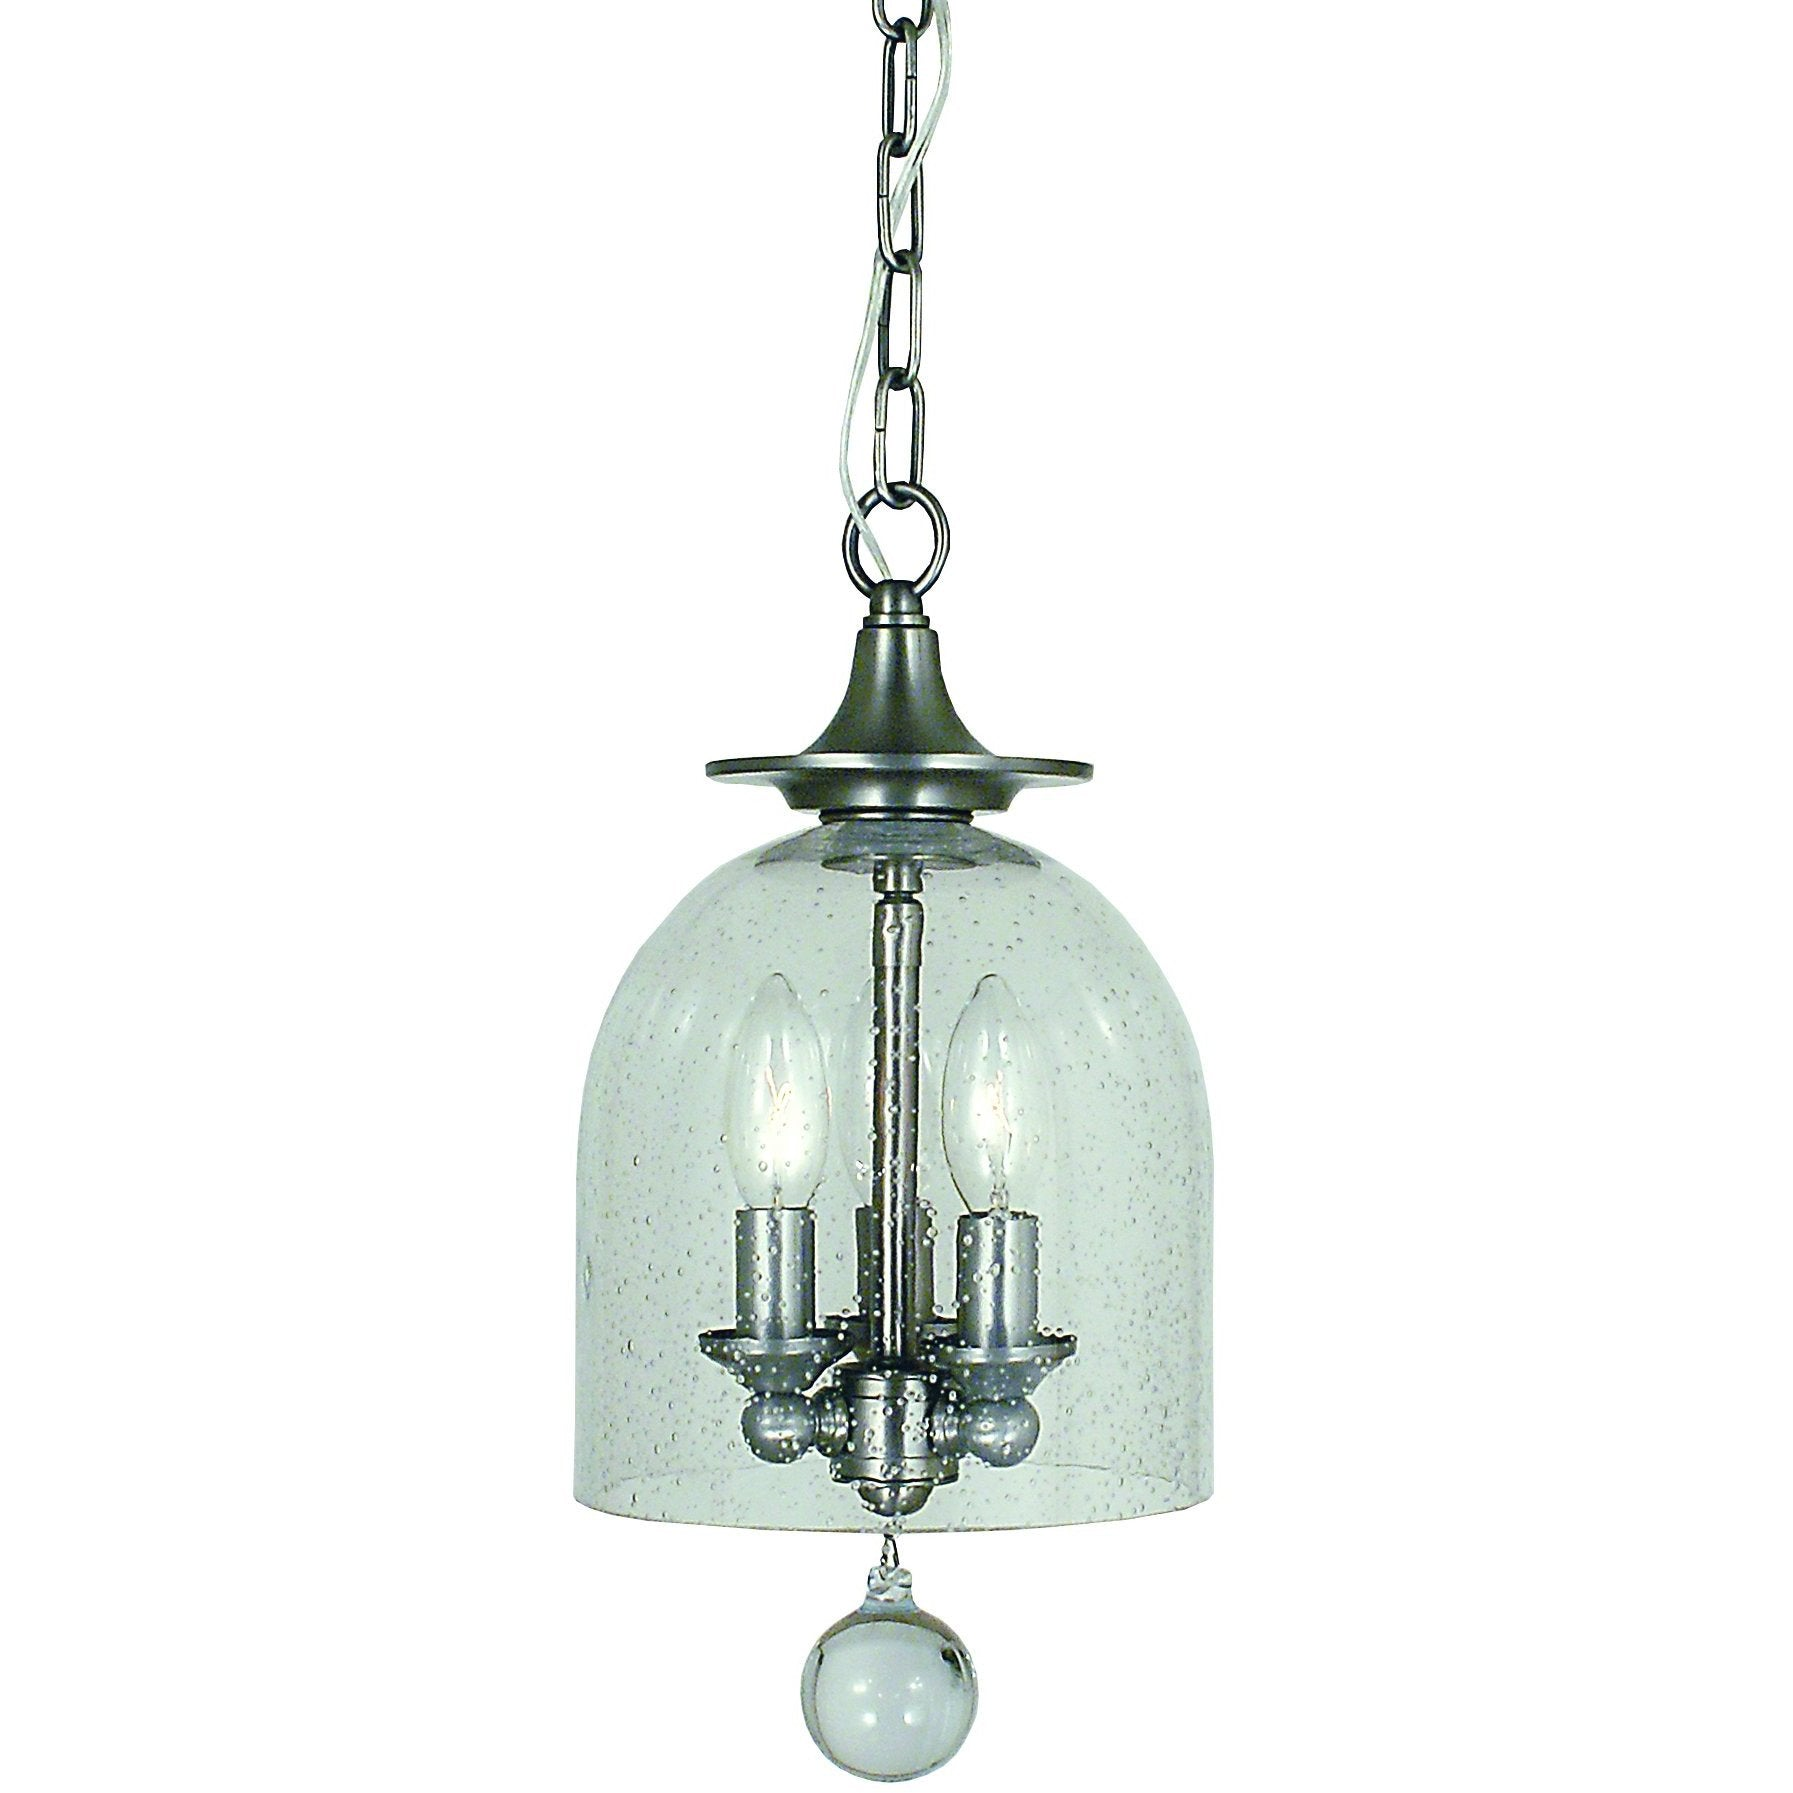 Framburg Mini Chandeliers Brushed Nickel 3-Light Brushed Nickel Hannover Pendant by Framburg 4351